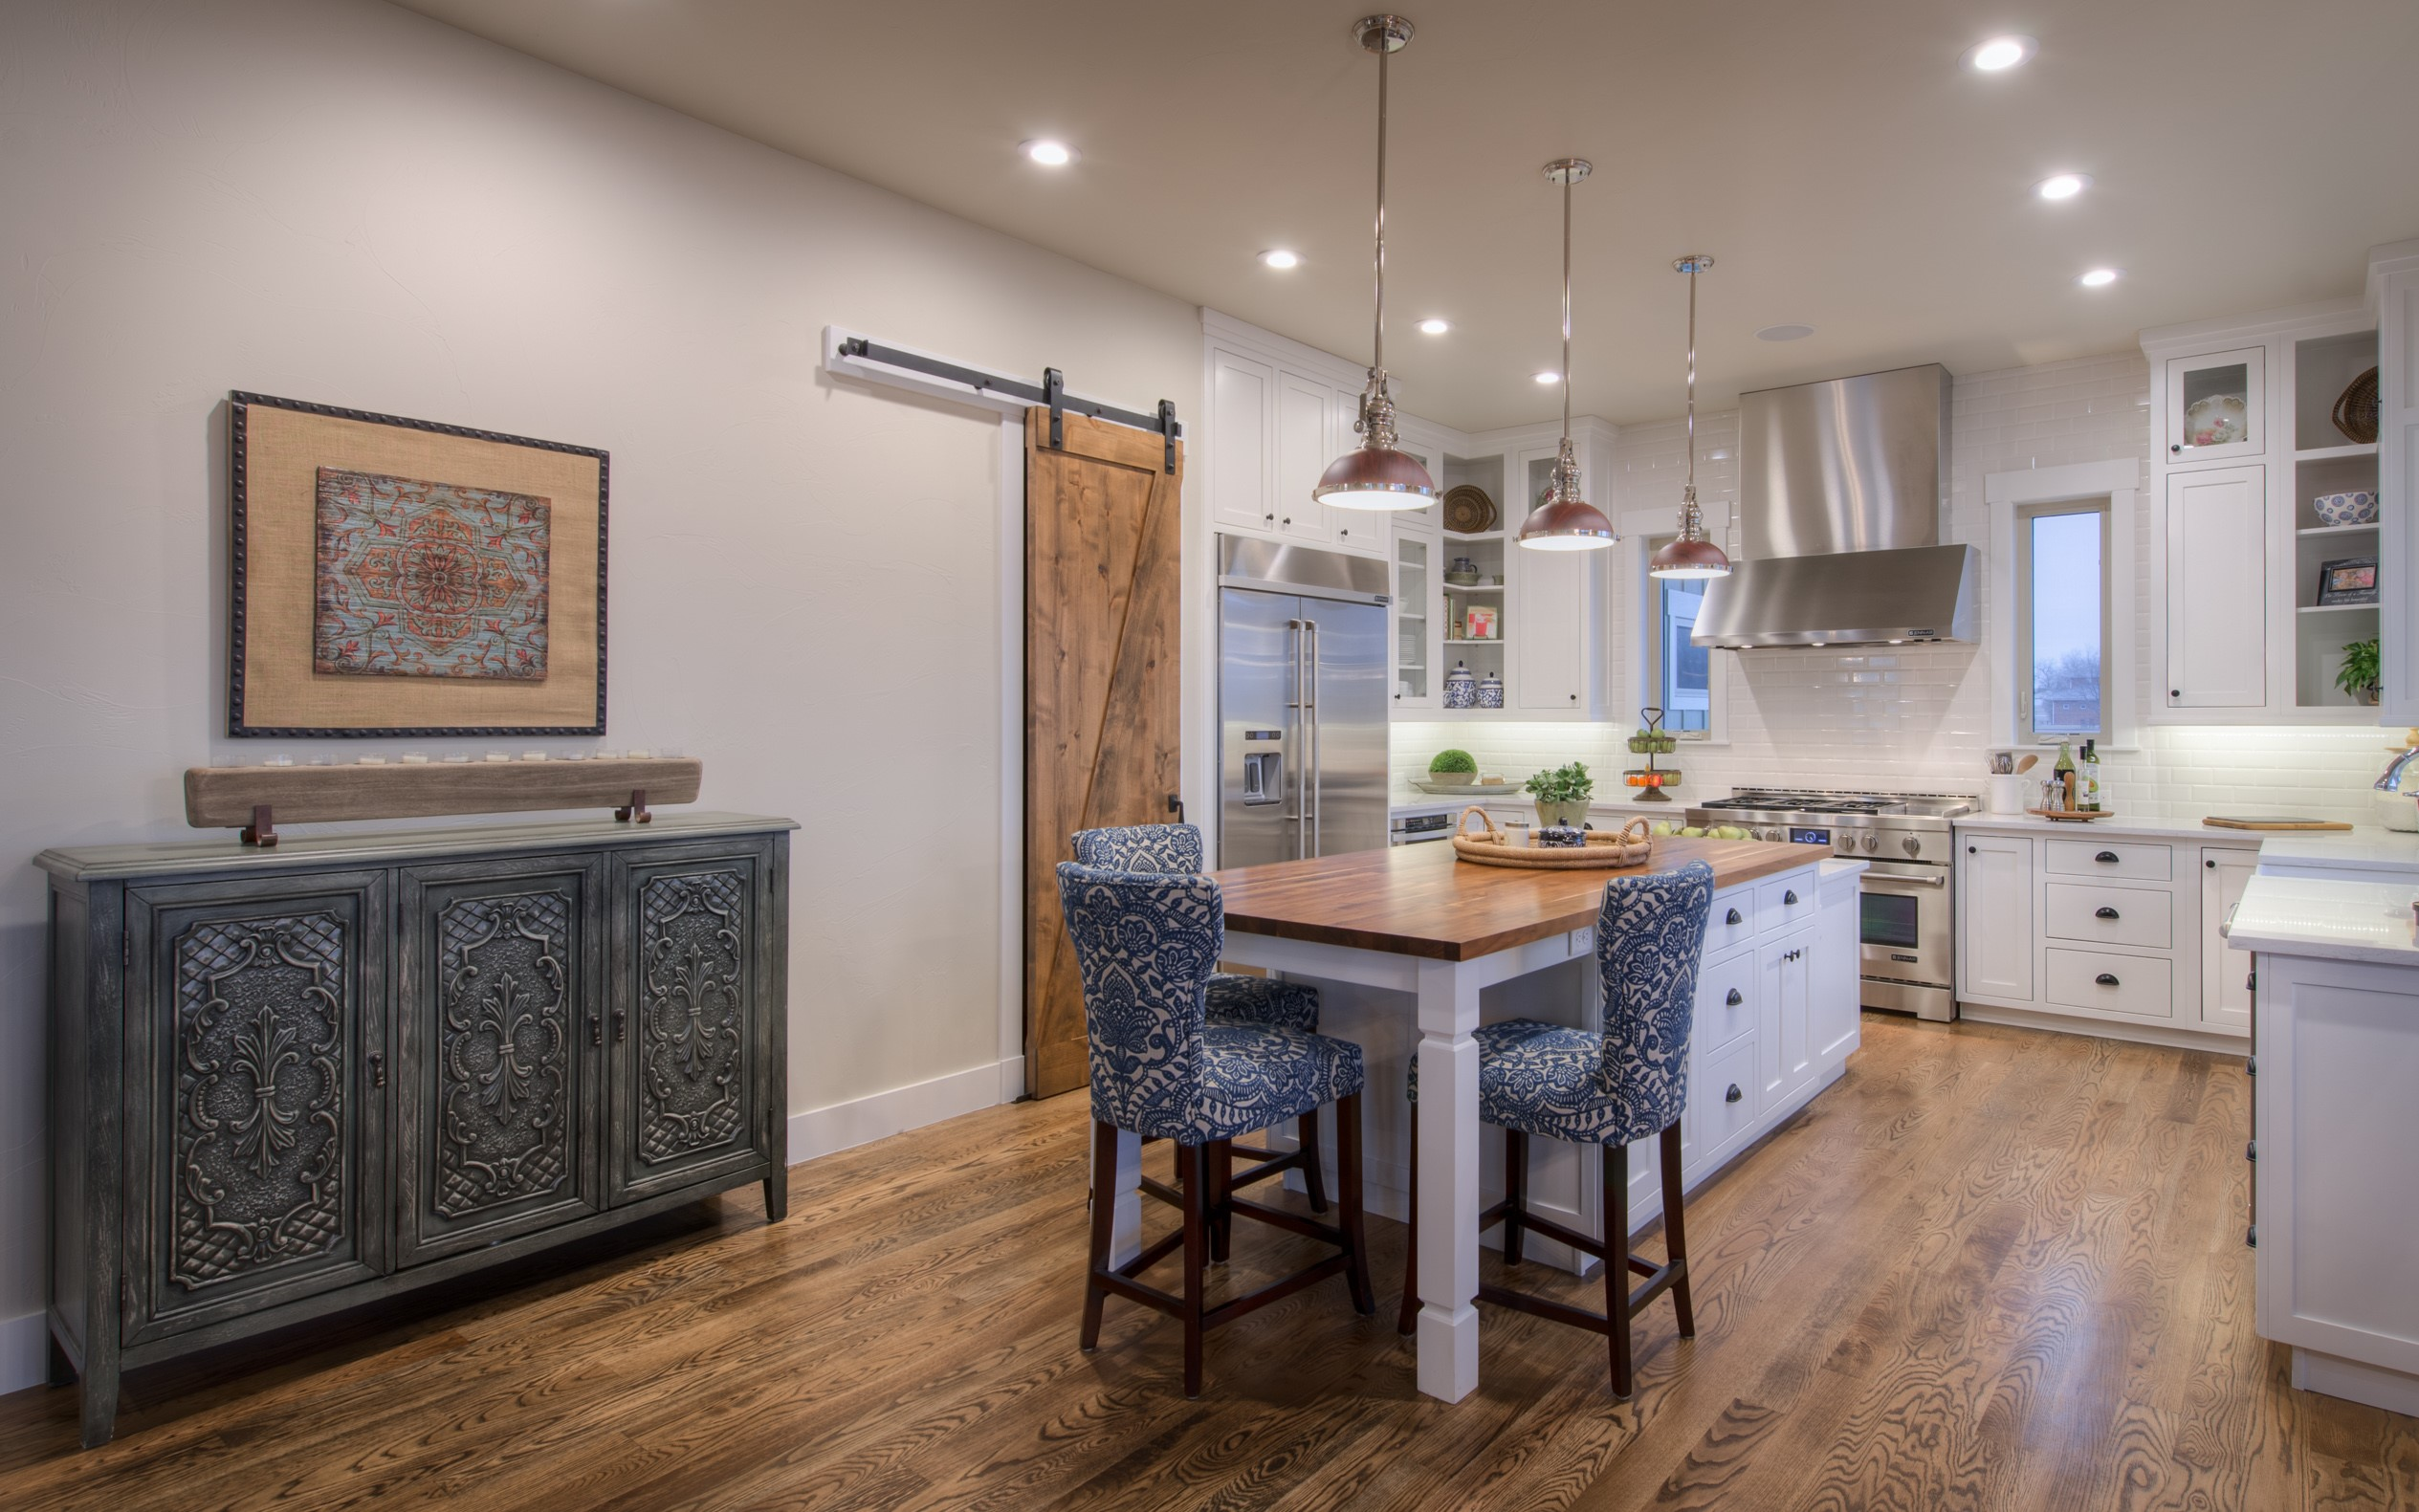 Center island in the country style kitchen of house plan #161-1072